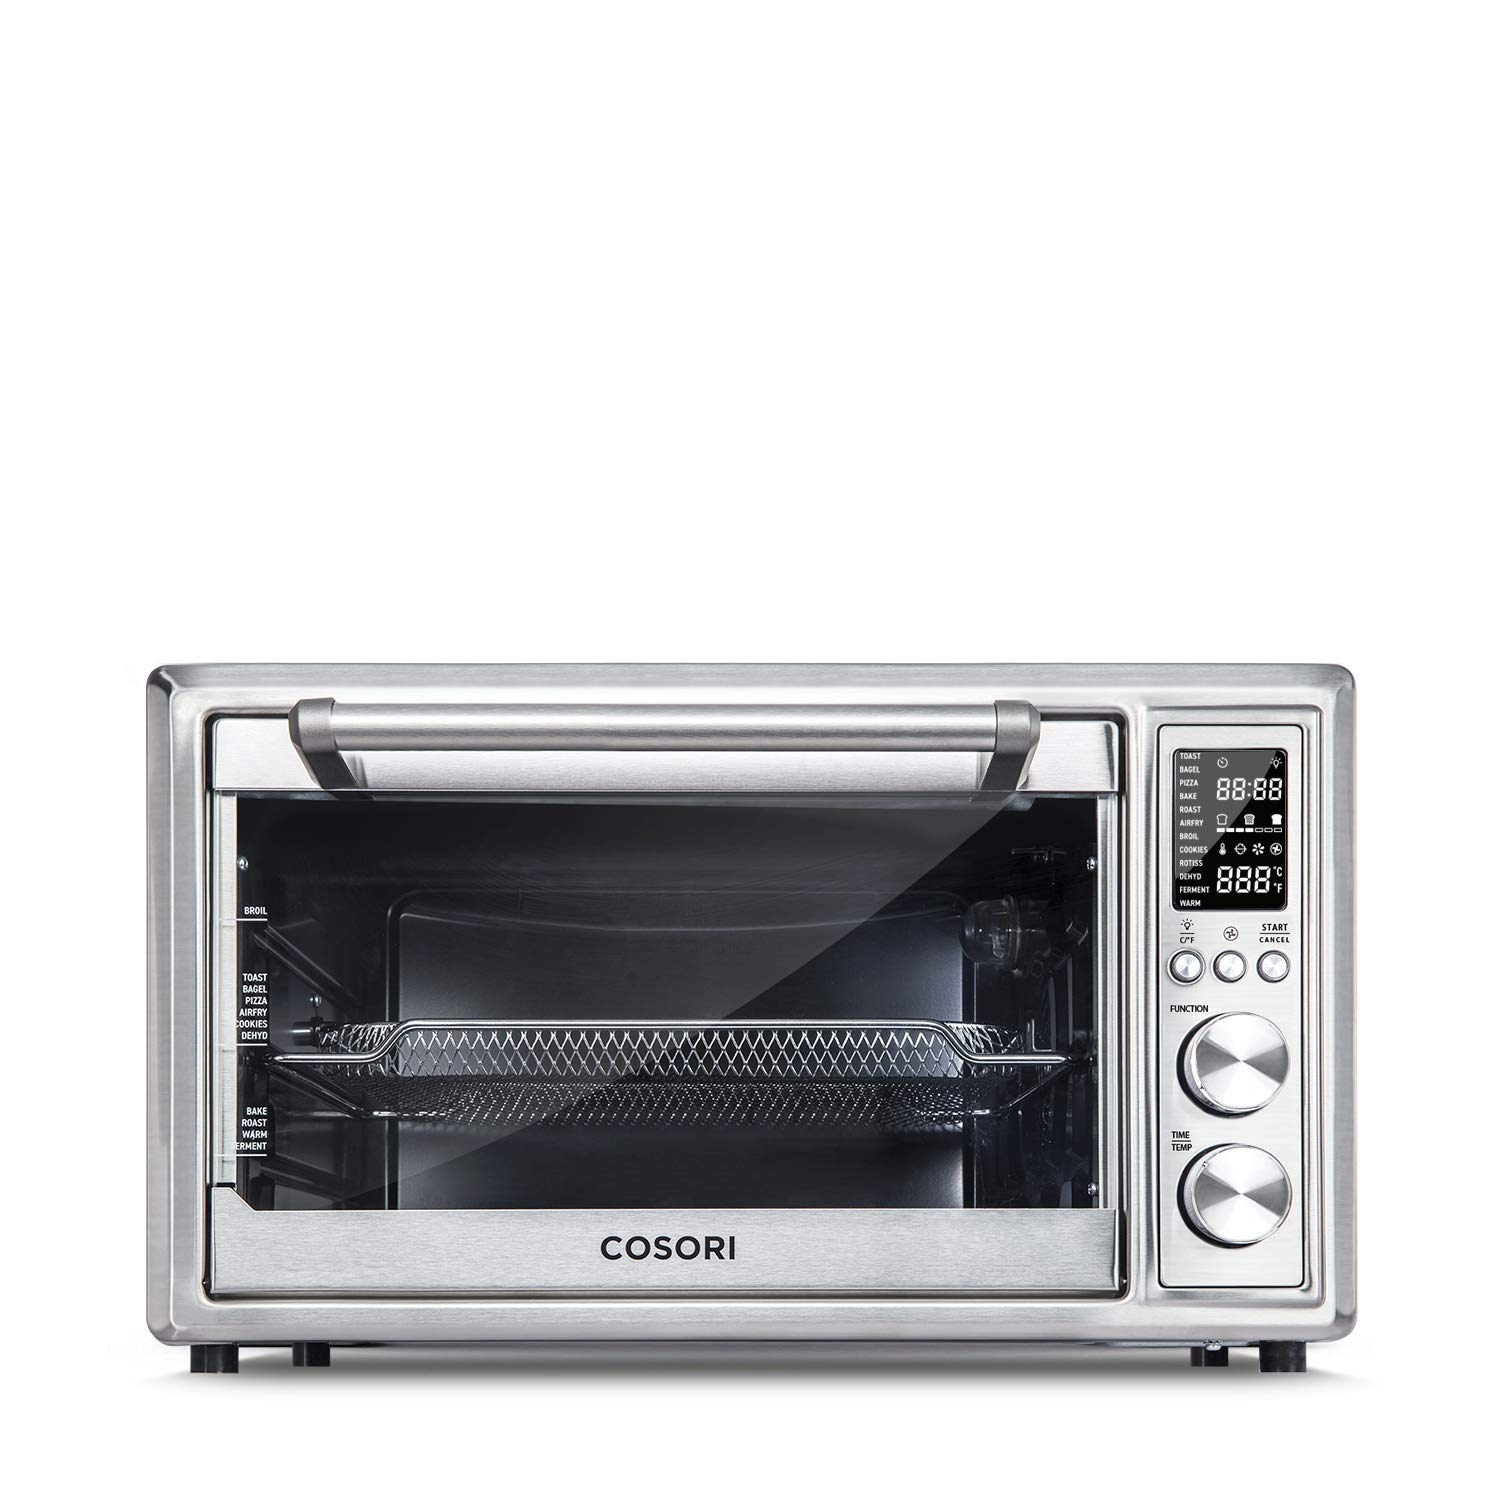 Cosori Air Fryer Toaster Oven, 32 QT,1800W Hot Convection Oven,Toast,Bake,Pizza, Rotisserie, Food Dehydrator and Keep Warm, Nonstick Interior and Brushed Stainless Steel, 2 Year Warranty (Renewed) by COSORI